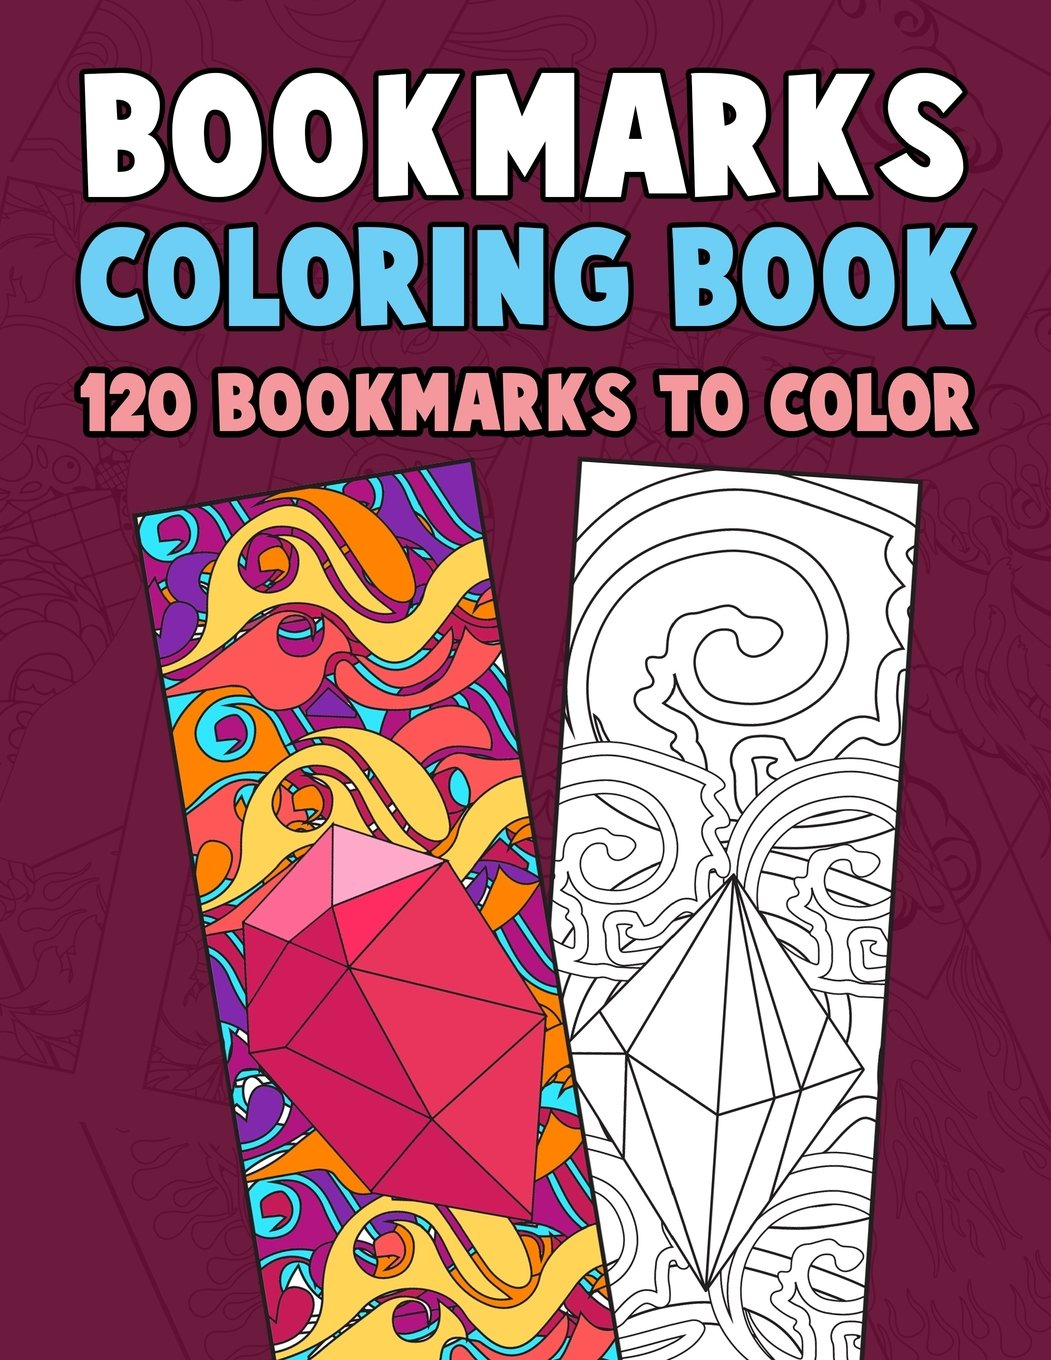 Bookmarks Coloring Book: 120 Bookmarks to Color: Coloring Activity Book for Kids, Adults and Seniors Who Love Reading PDF